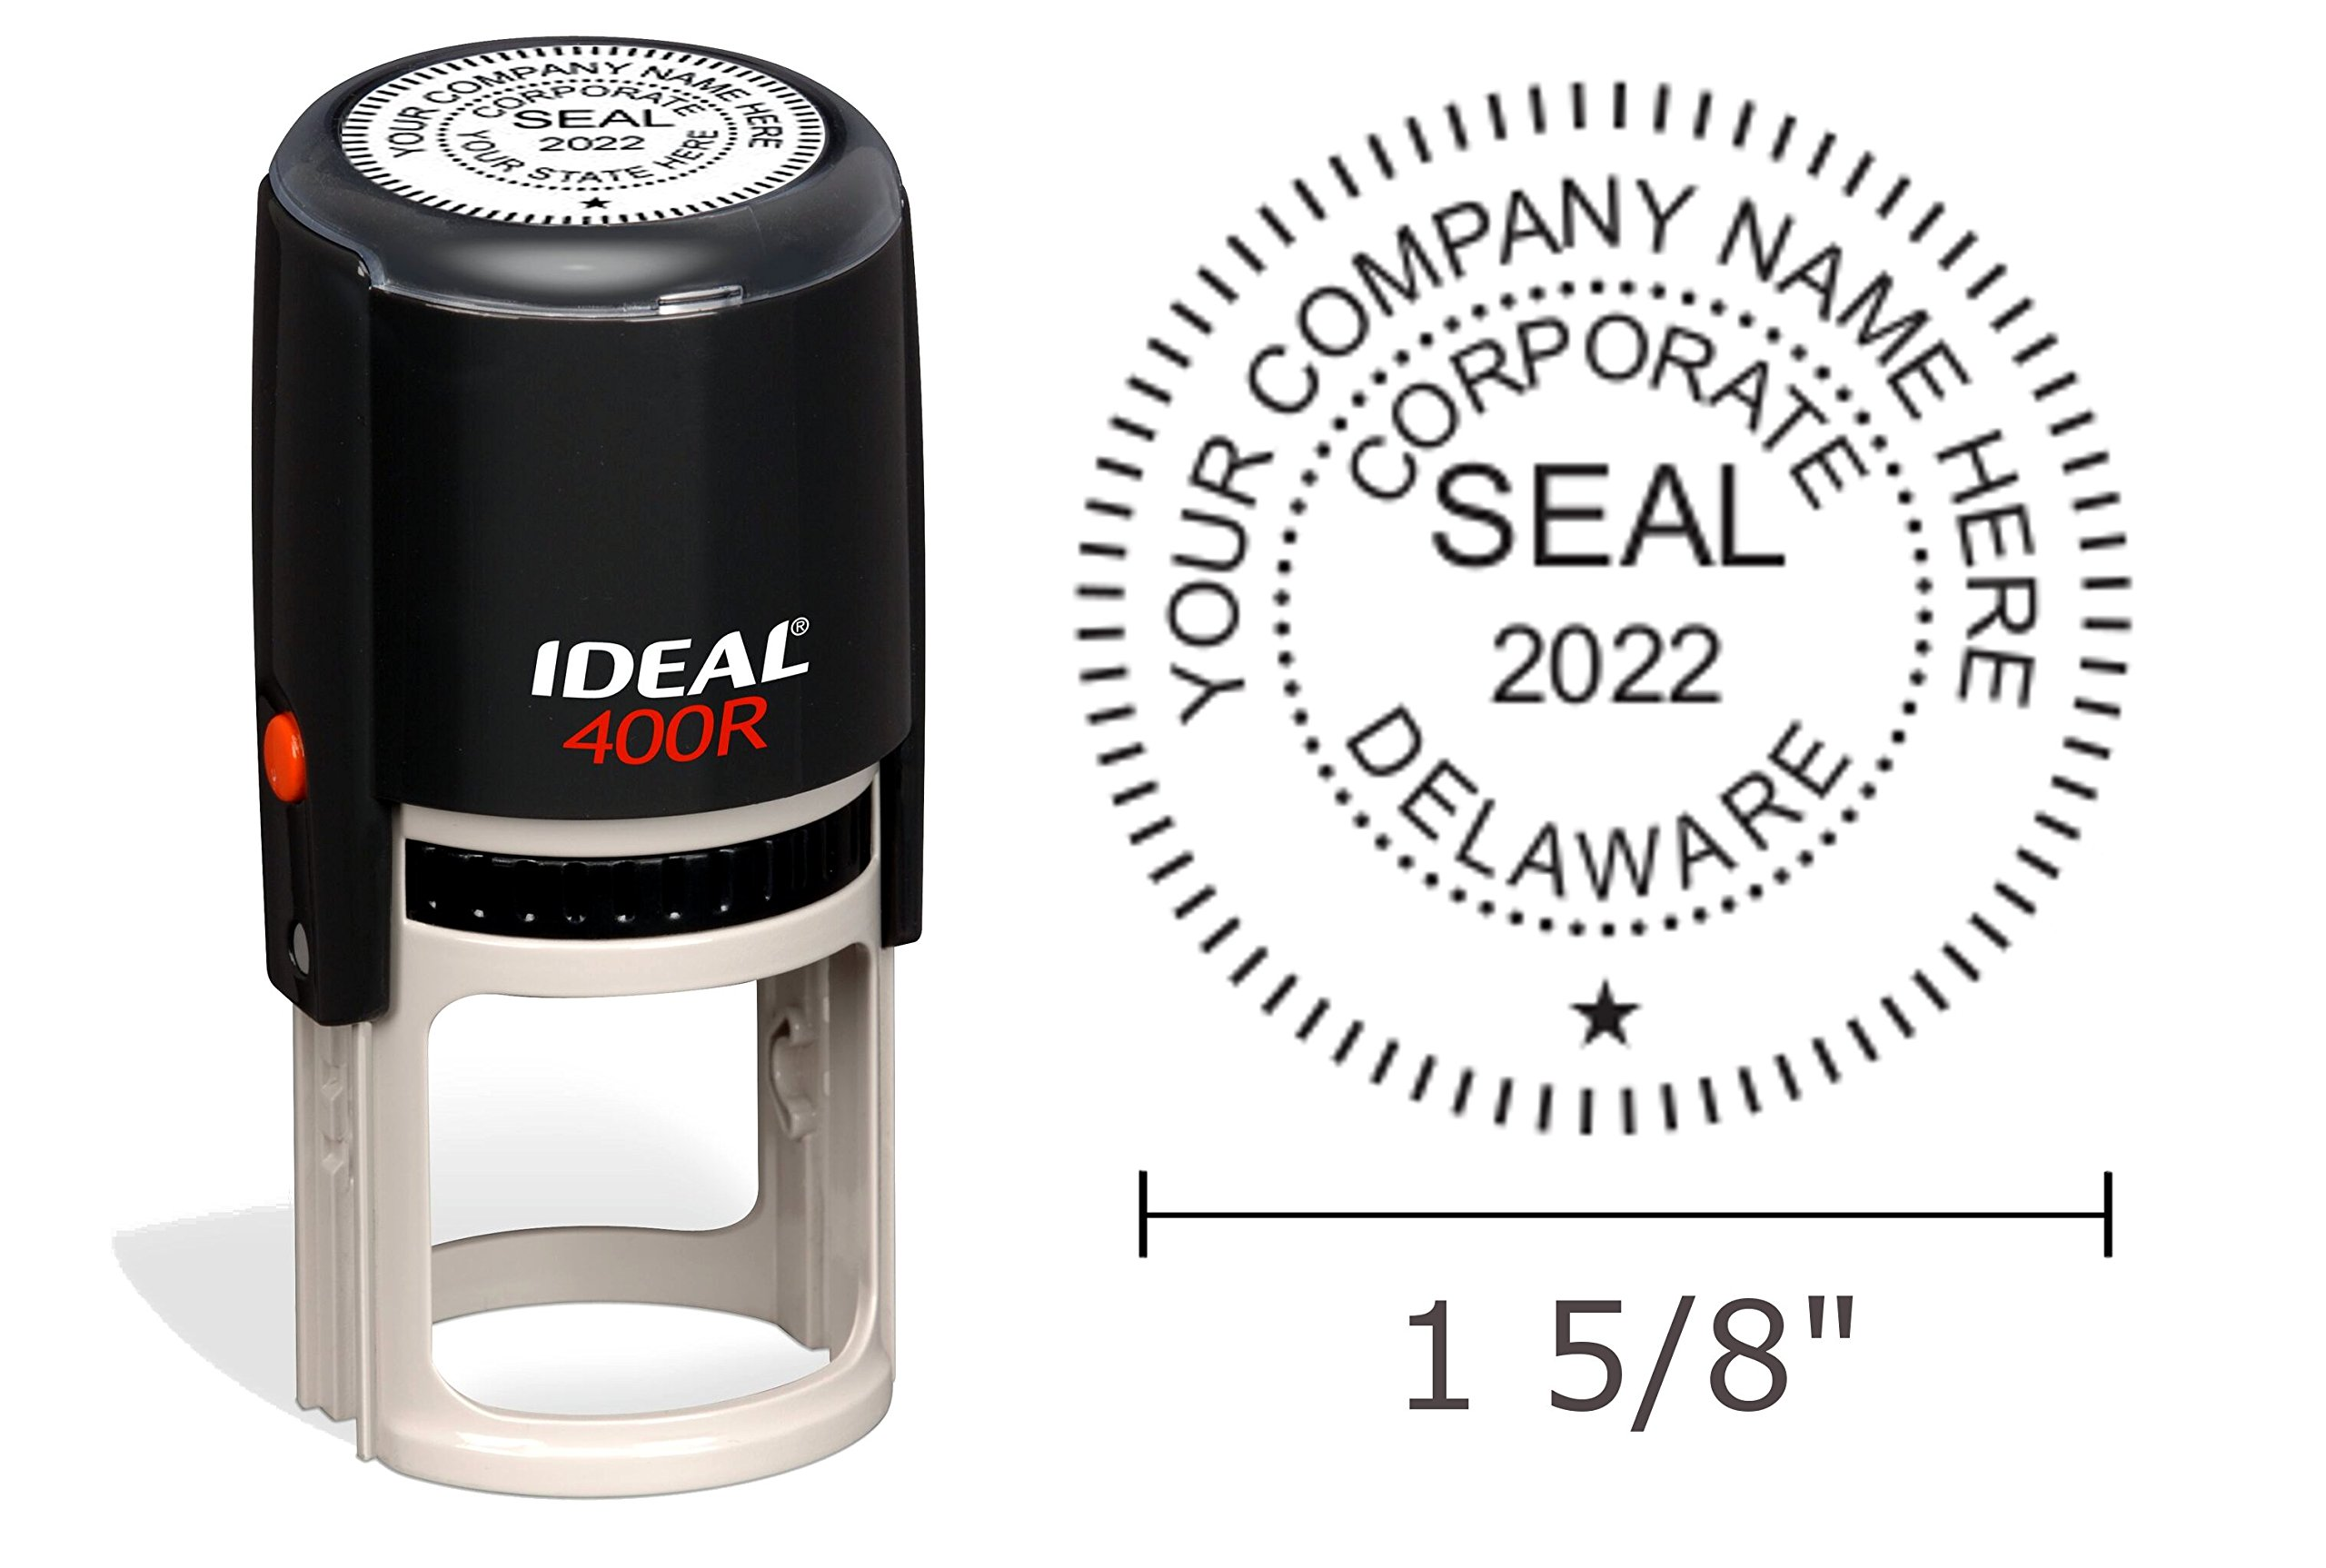 Delaware Corporate Seal Stamp, Ideal 400R, Round 1-5/8'' Impression, Black Body